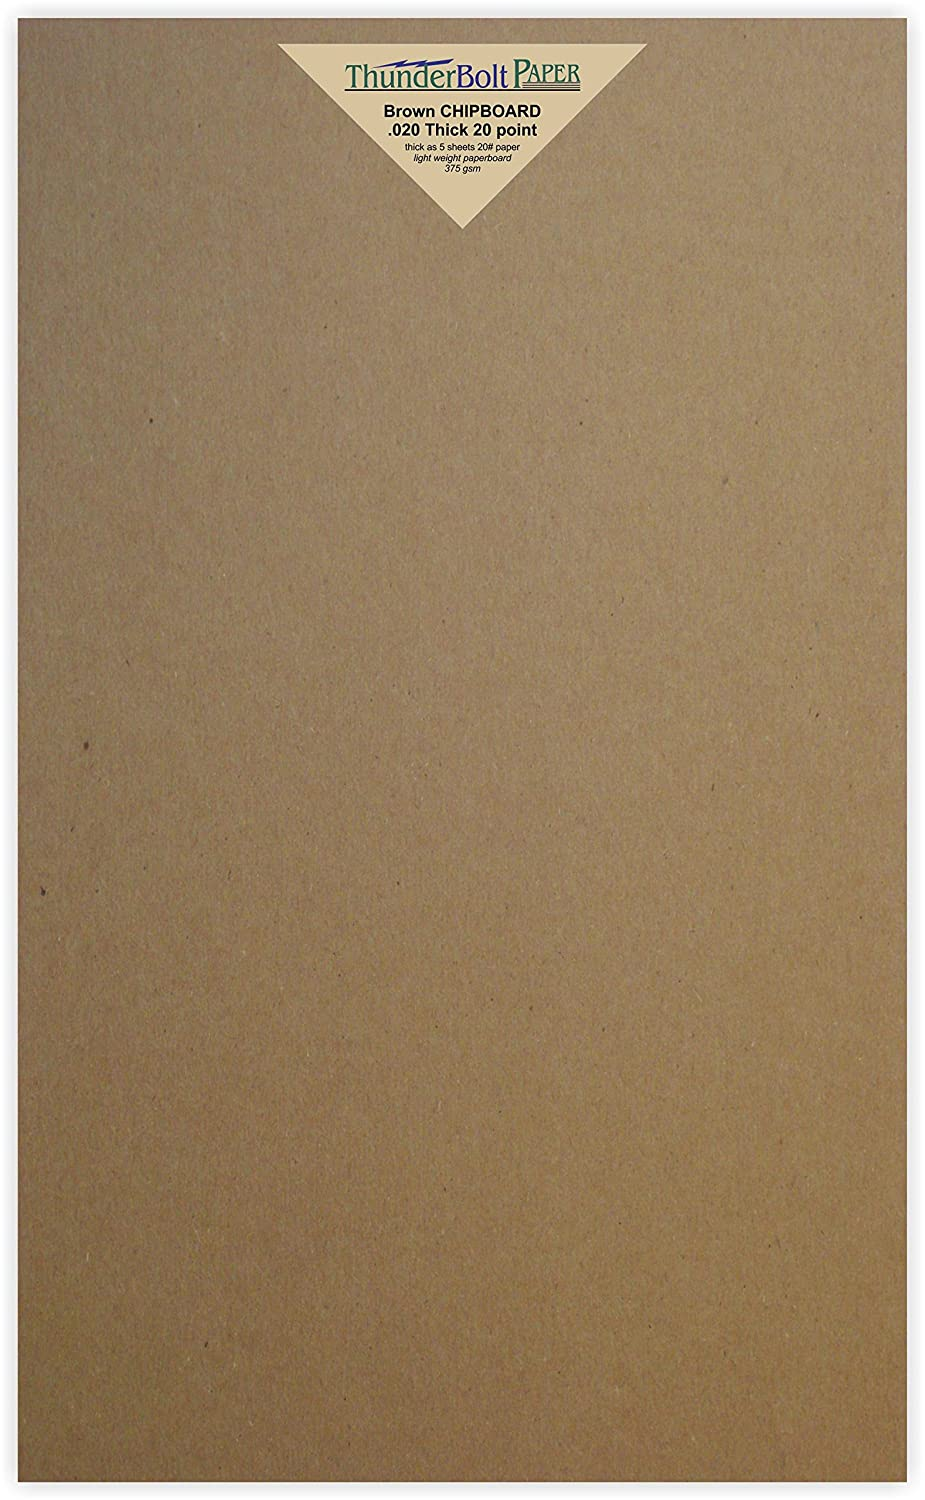 20 Sheets Chipboard 20pt (point) 8.5 X 14 Inches Light Weight Legal Size .020 Caliper Thick Cardboard Craft|Ship Brown Kraft Paper Board TBP